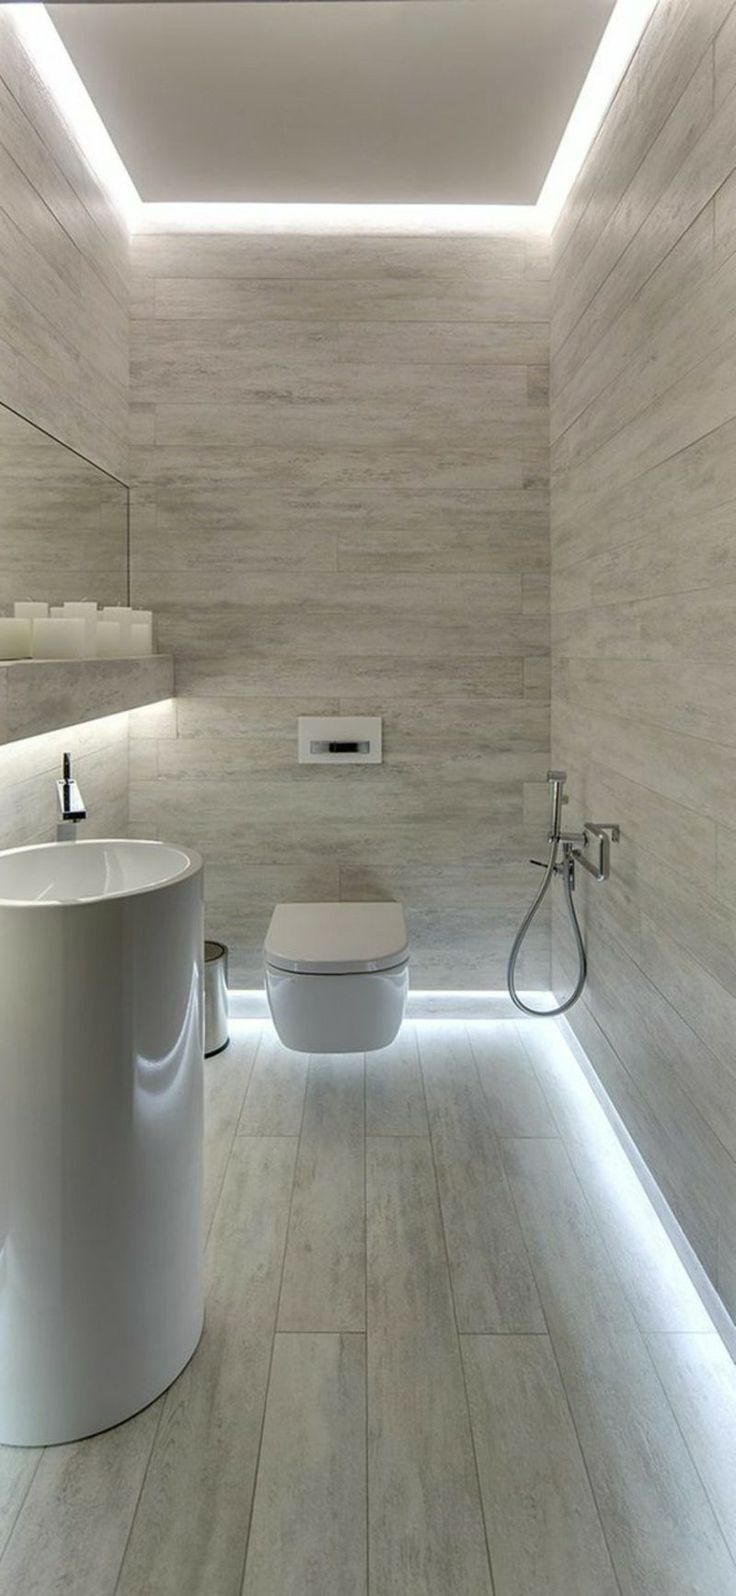 1000+ ideas about Indirekte Beleuchtung Led on Pinterest ...